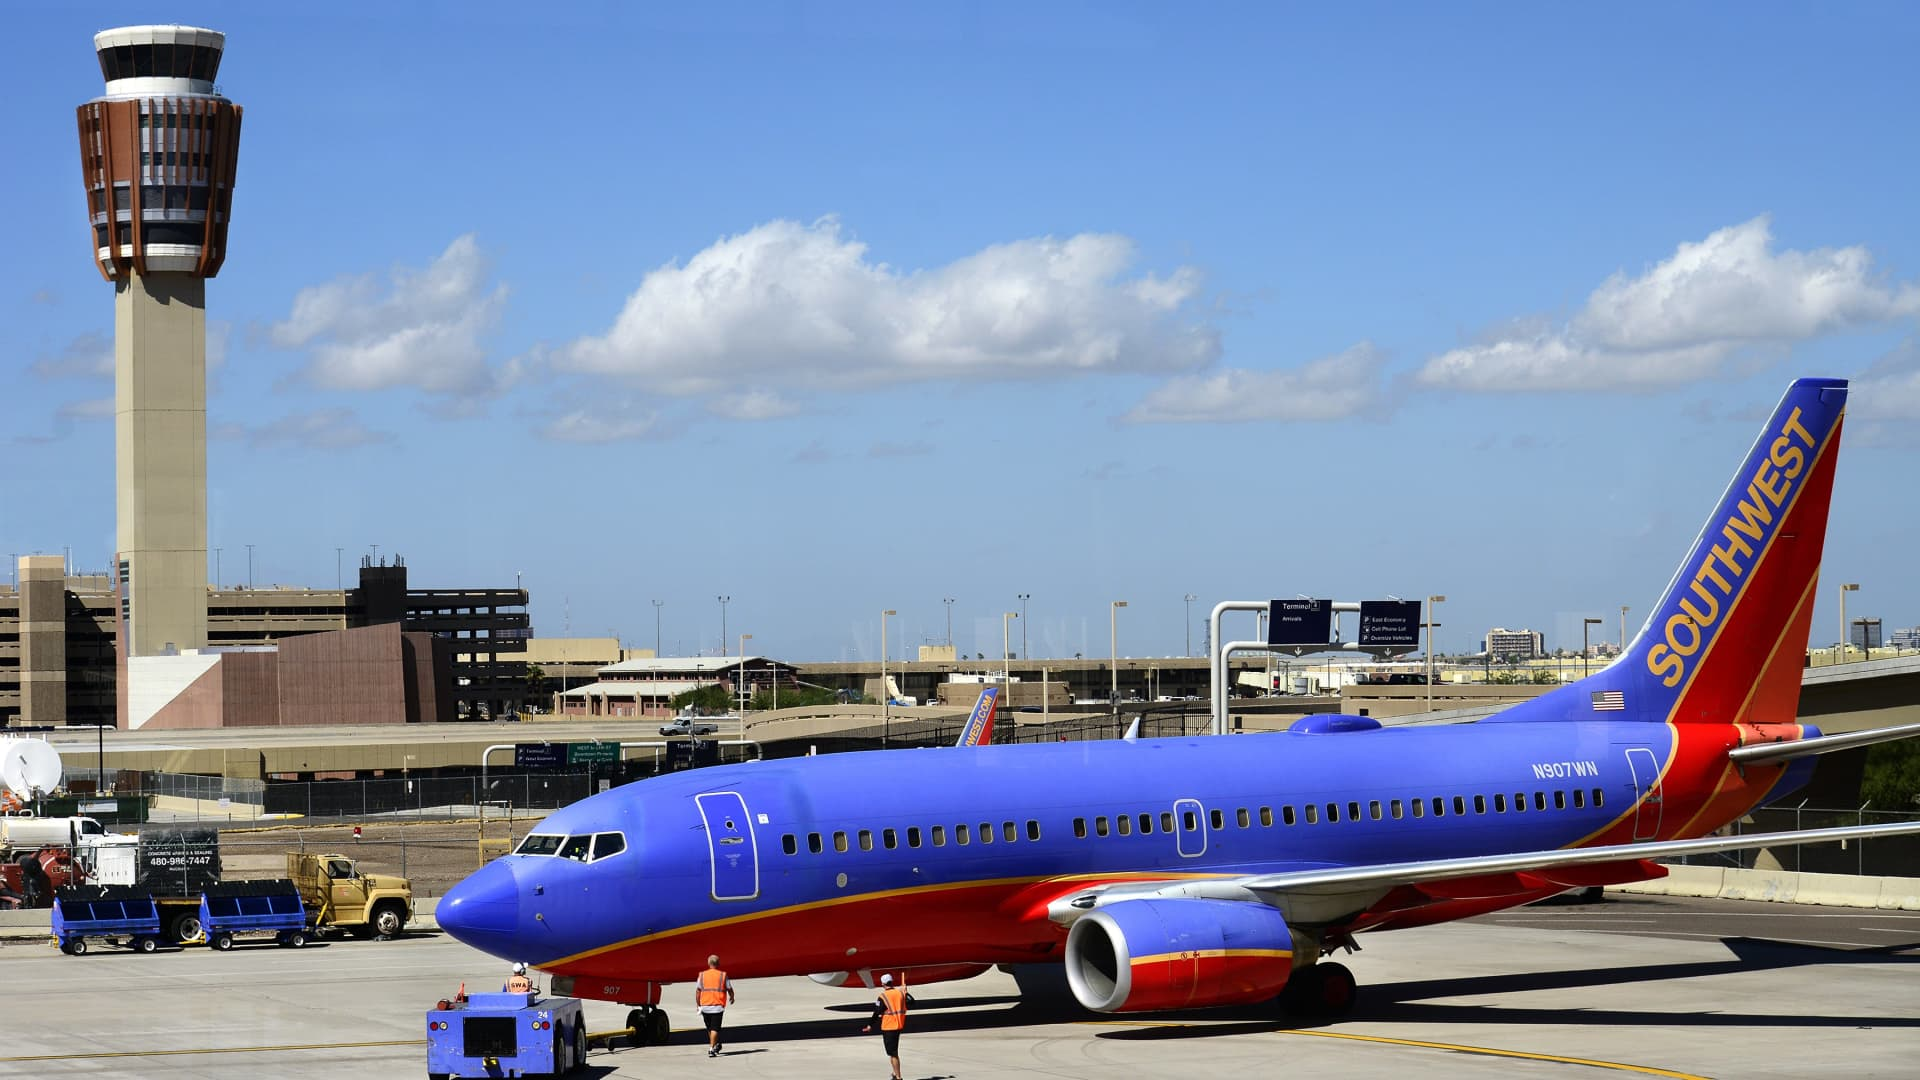 A Southwest Airlines Boeing 737 passenger aircraft is towed on the tarmac at Phoenix Sky Harbor International Airport in Phoenix, Arizona.